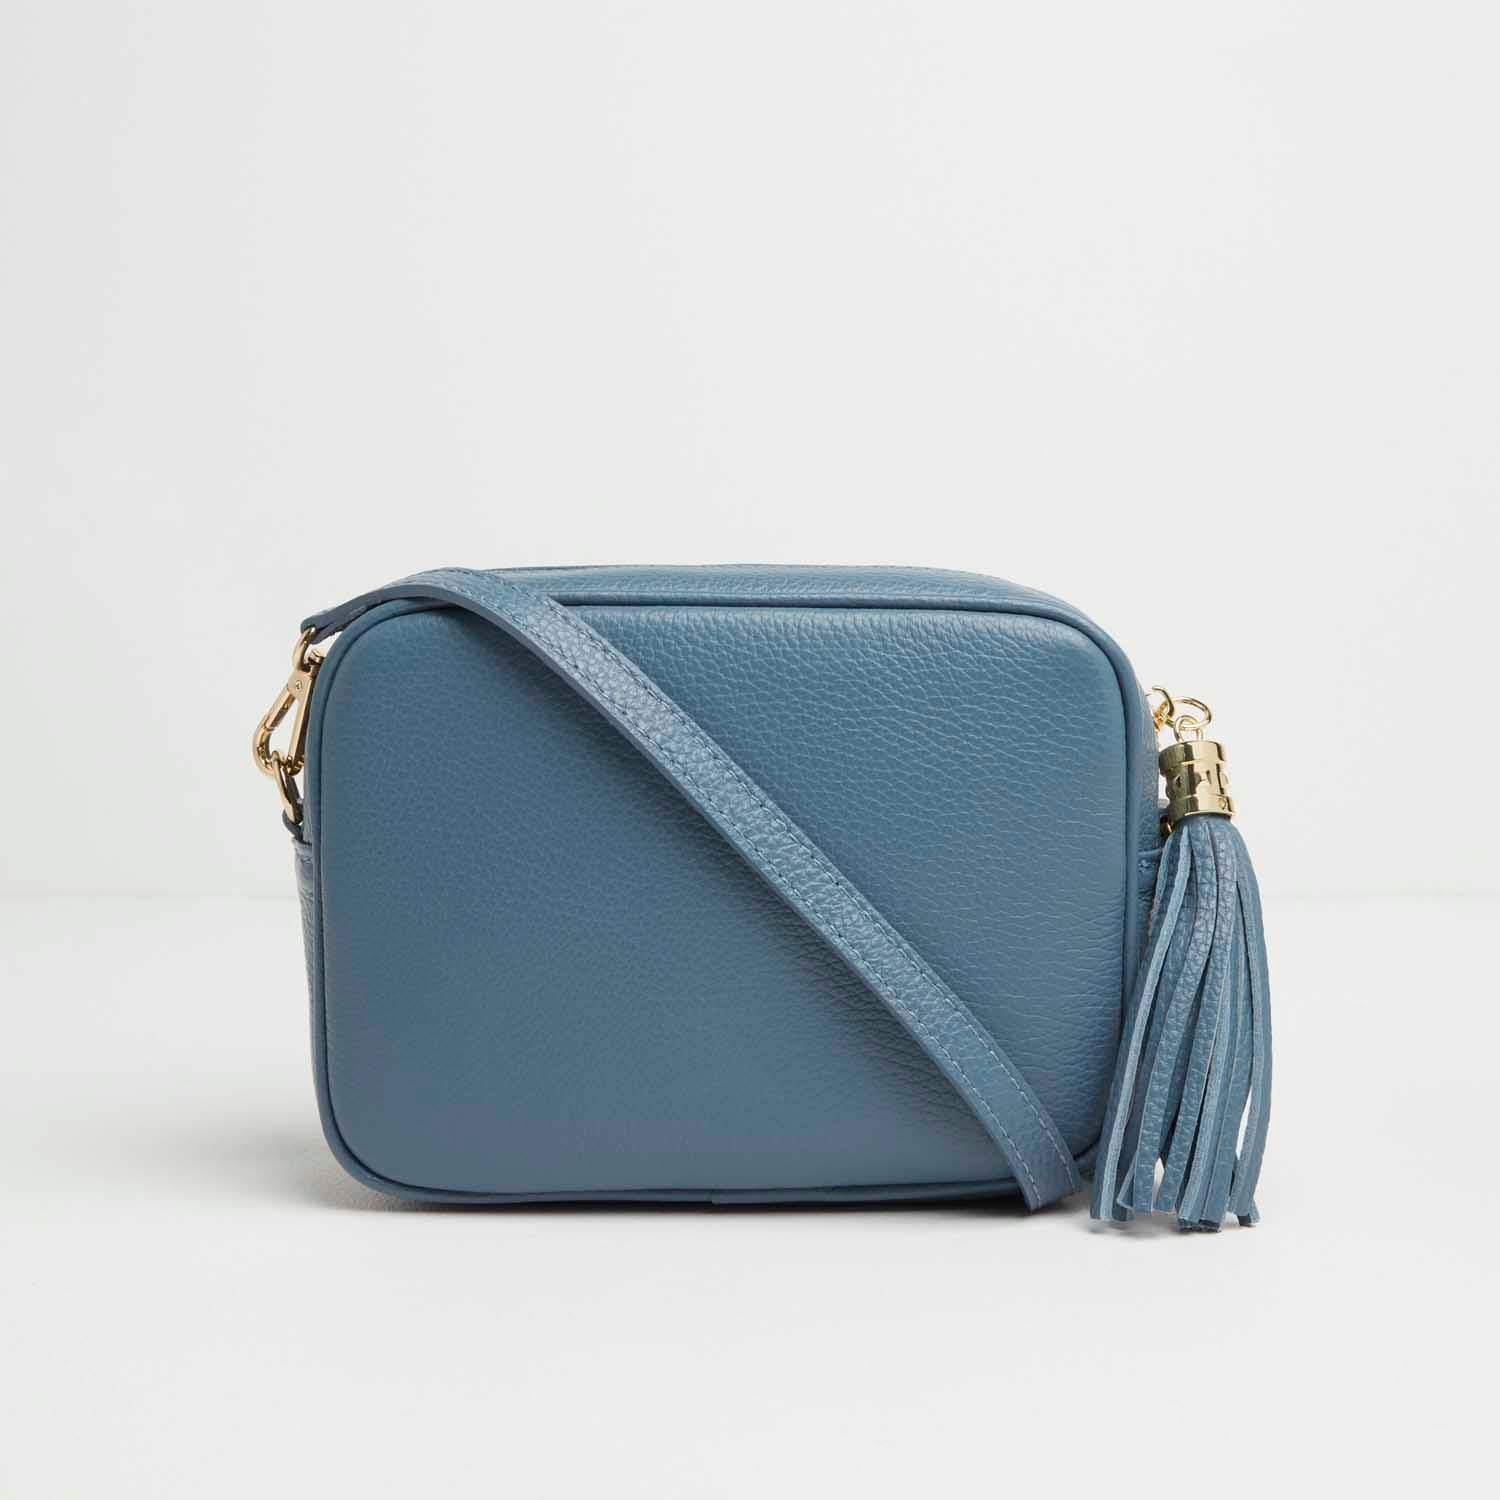 Verona Crossbody Tassel Denim Bag with Pastel Strap